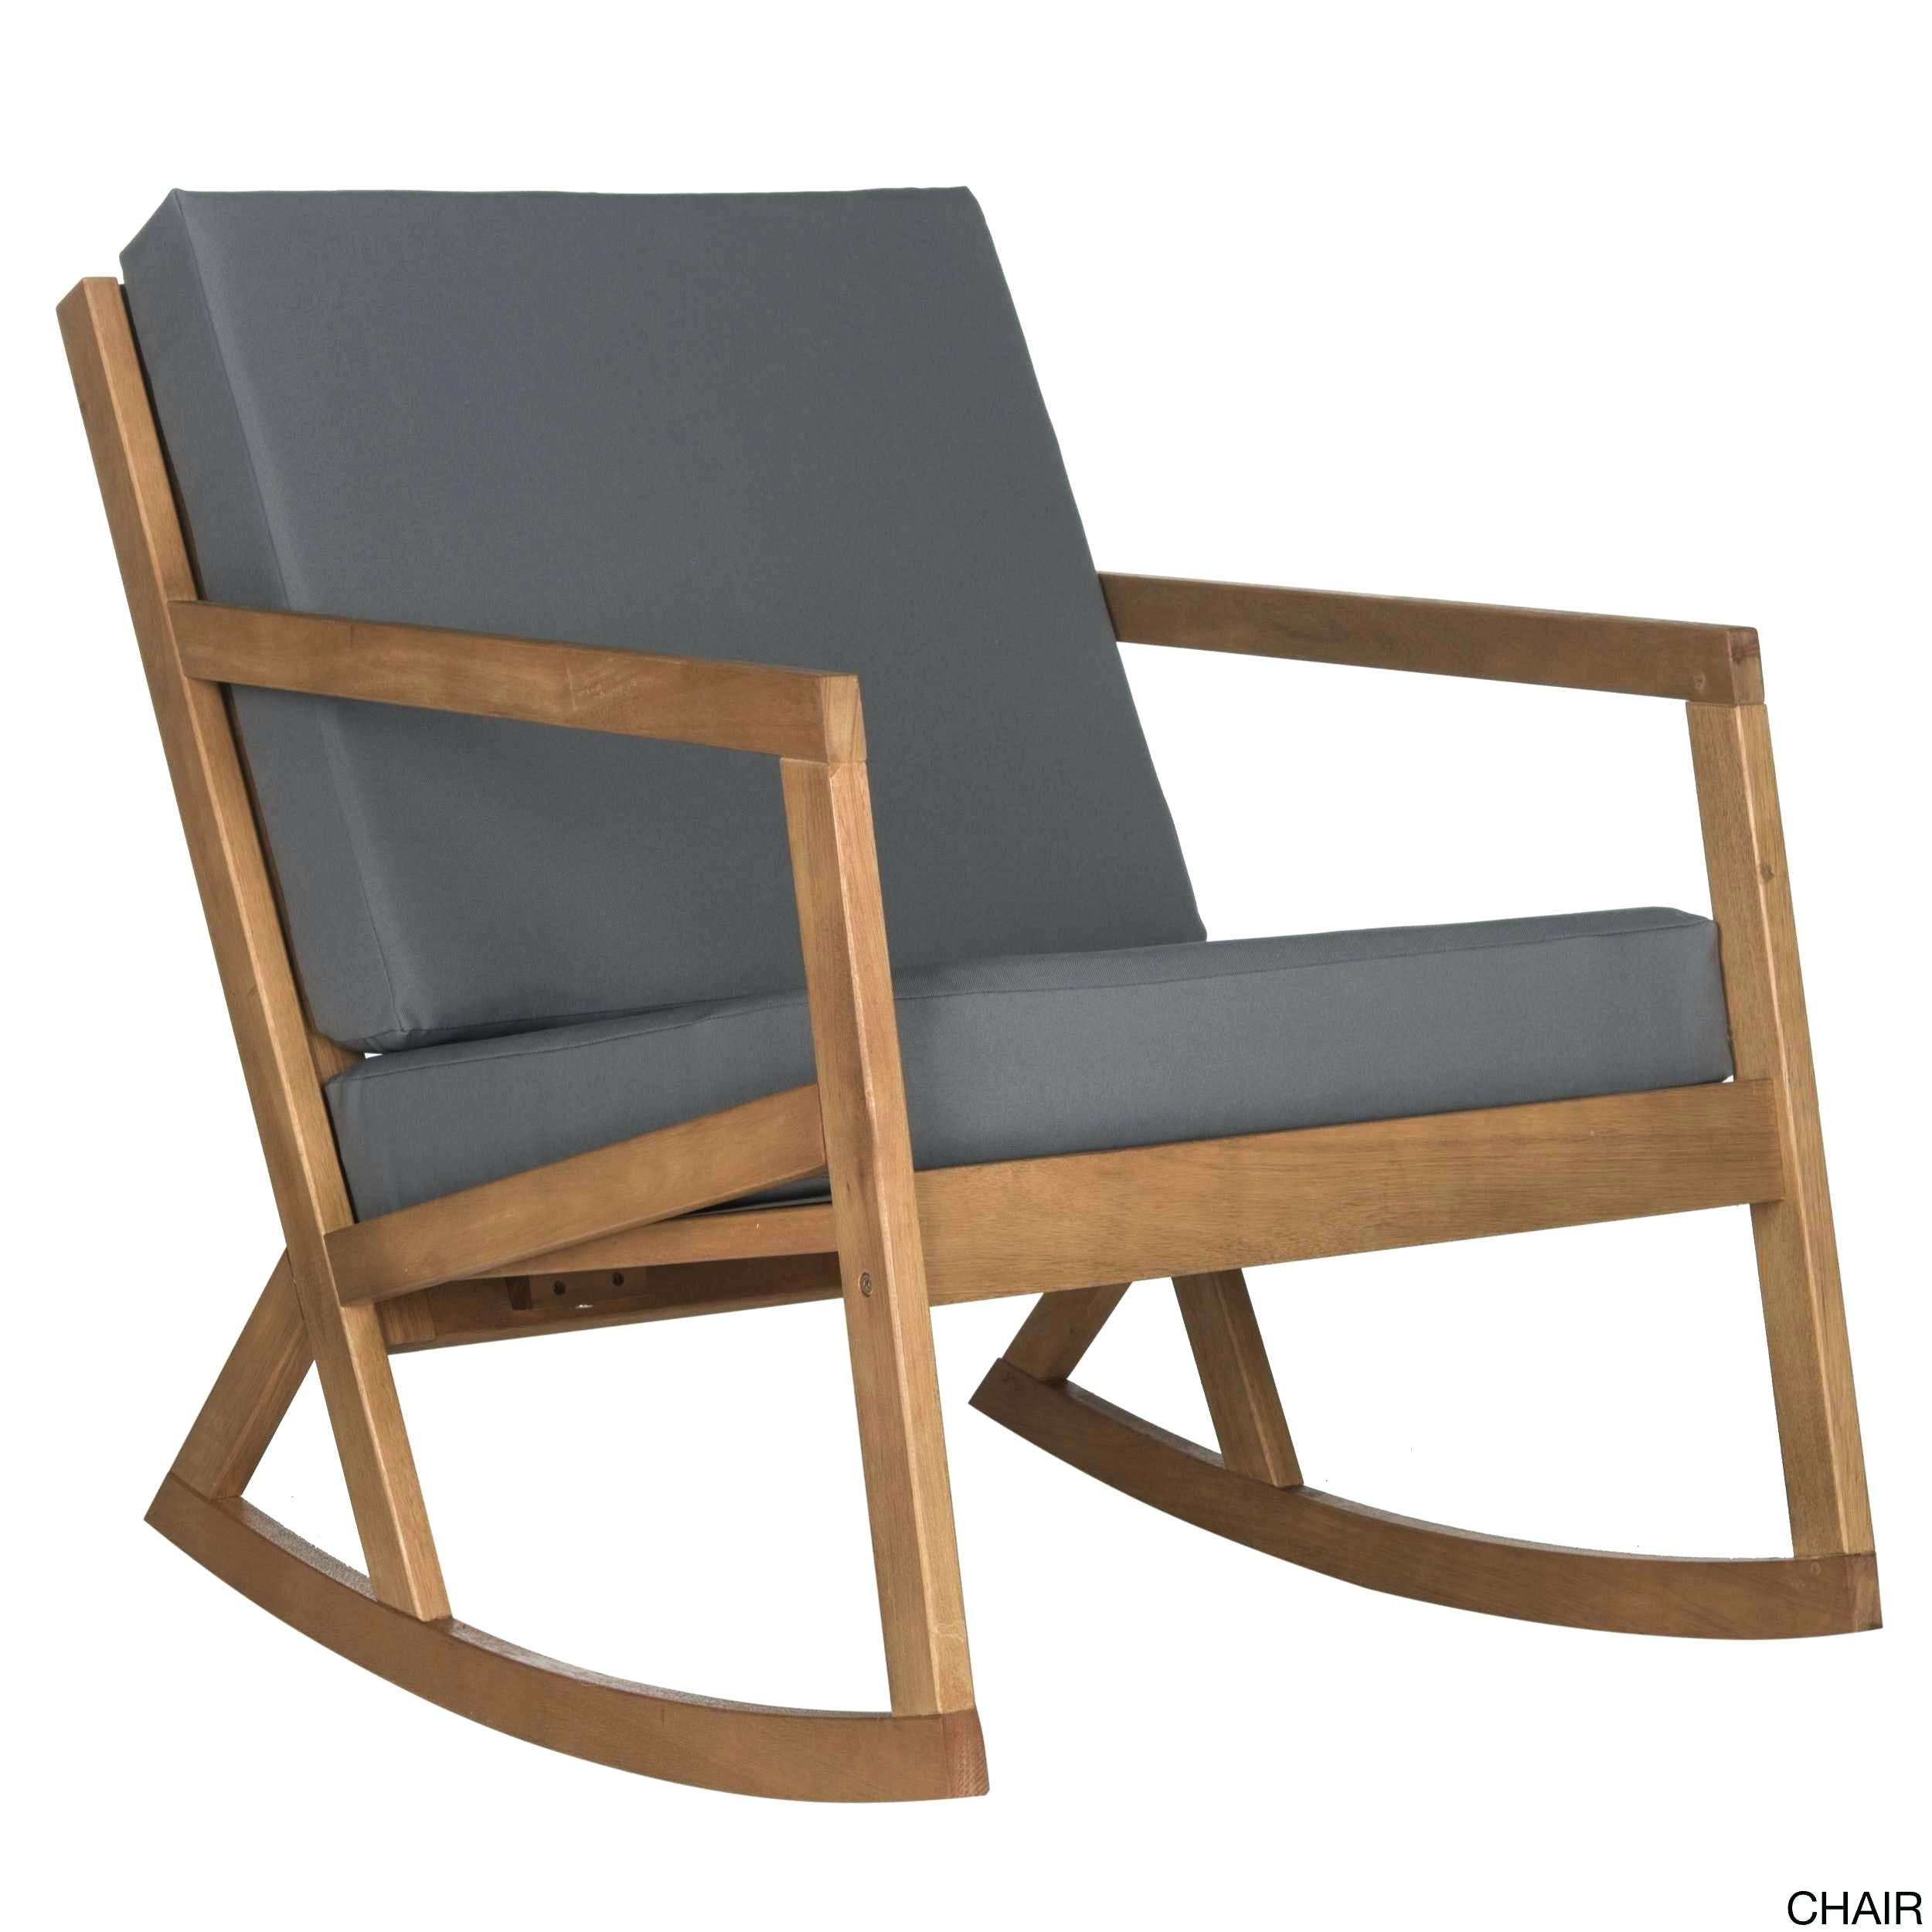 Chair : Patio Rocking Chairs Bradley Maple Jumbo Slat Wood Outdoor With Regard To Rocking Chairs For Patio (#5 of 15)